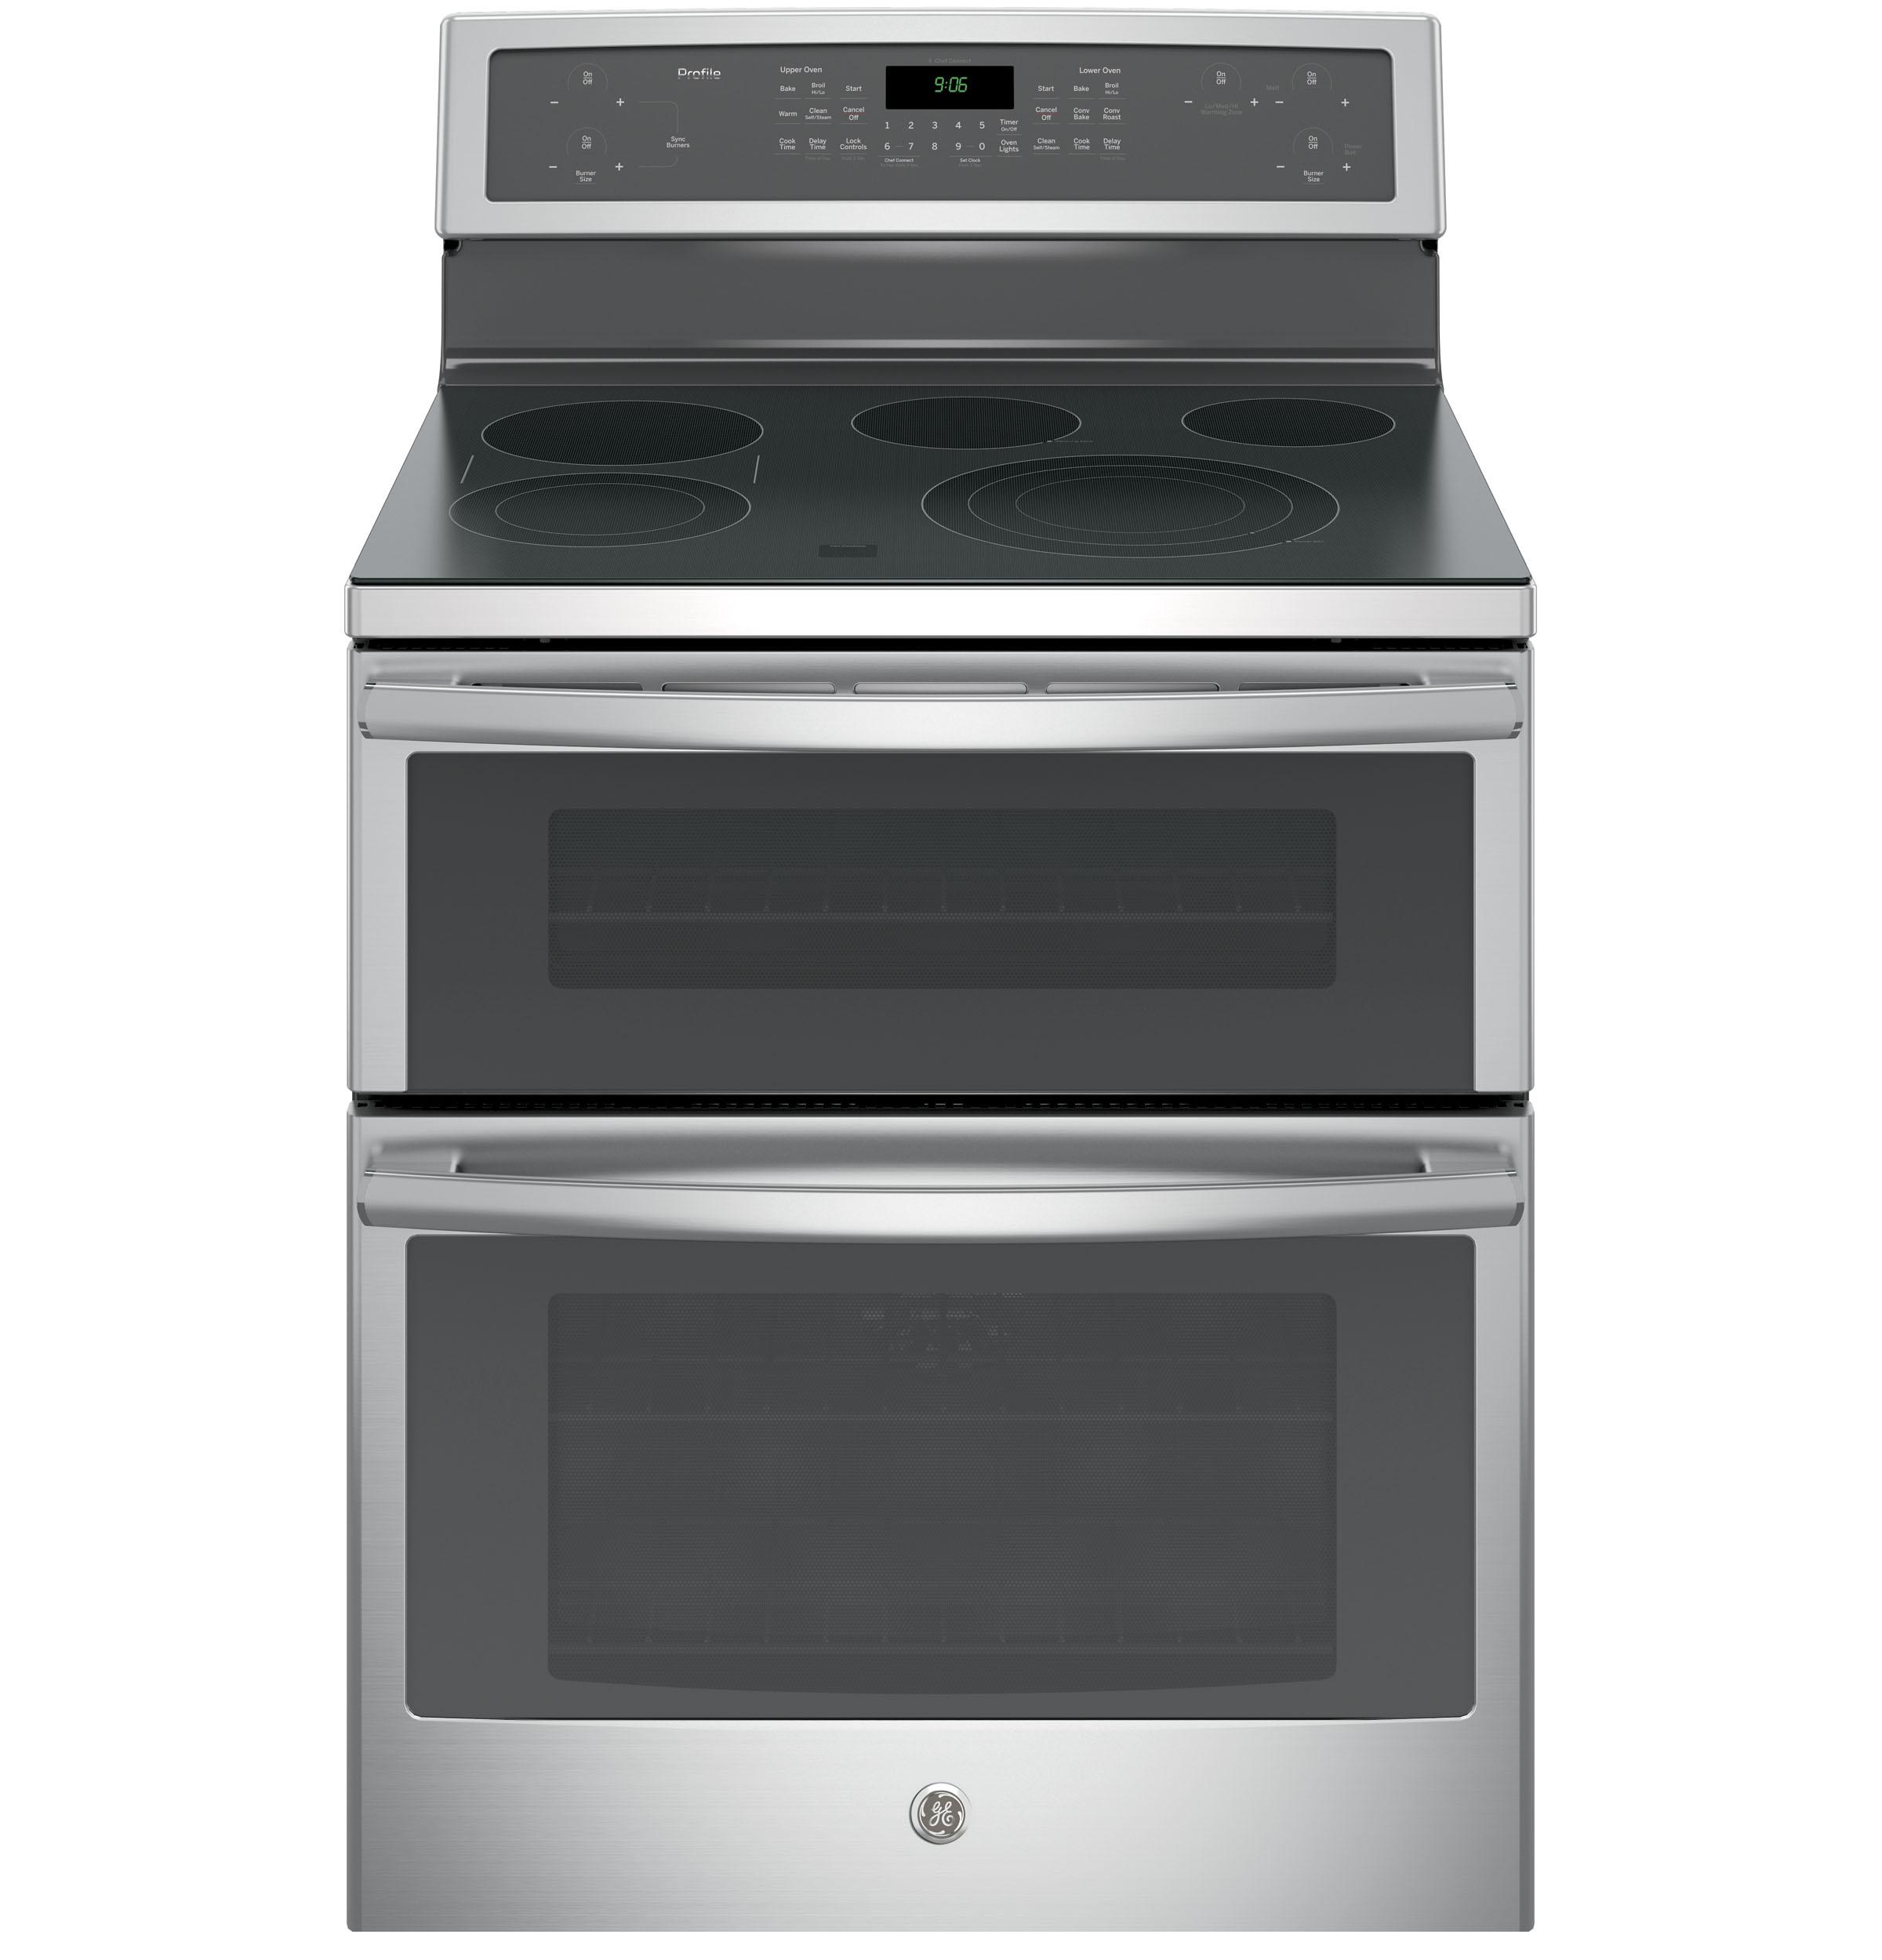 "GE Profile(TM) Series 30"" Free-Standing Electric Double Oven Convection Range